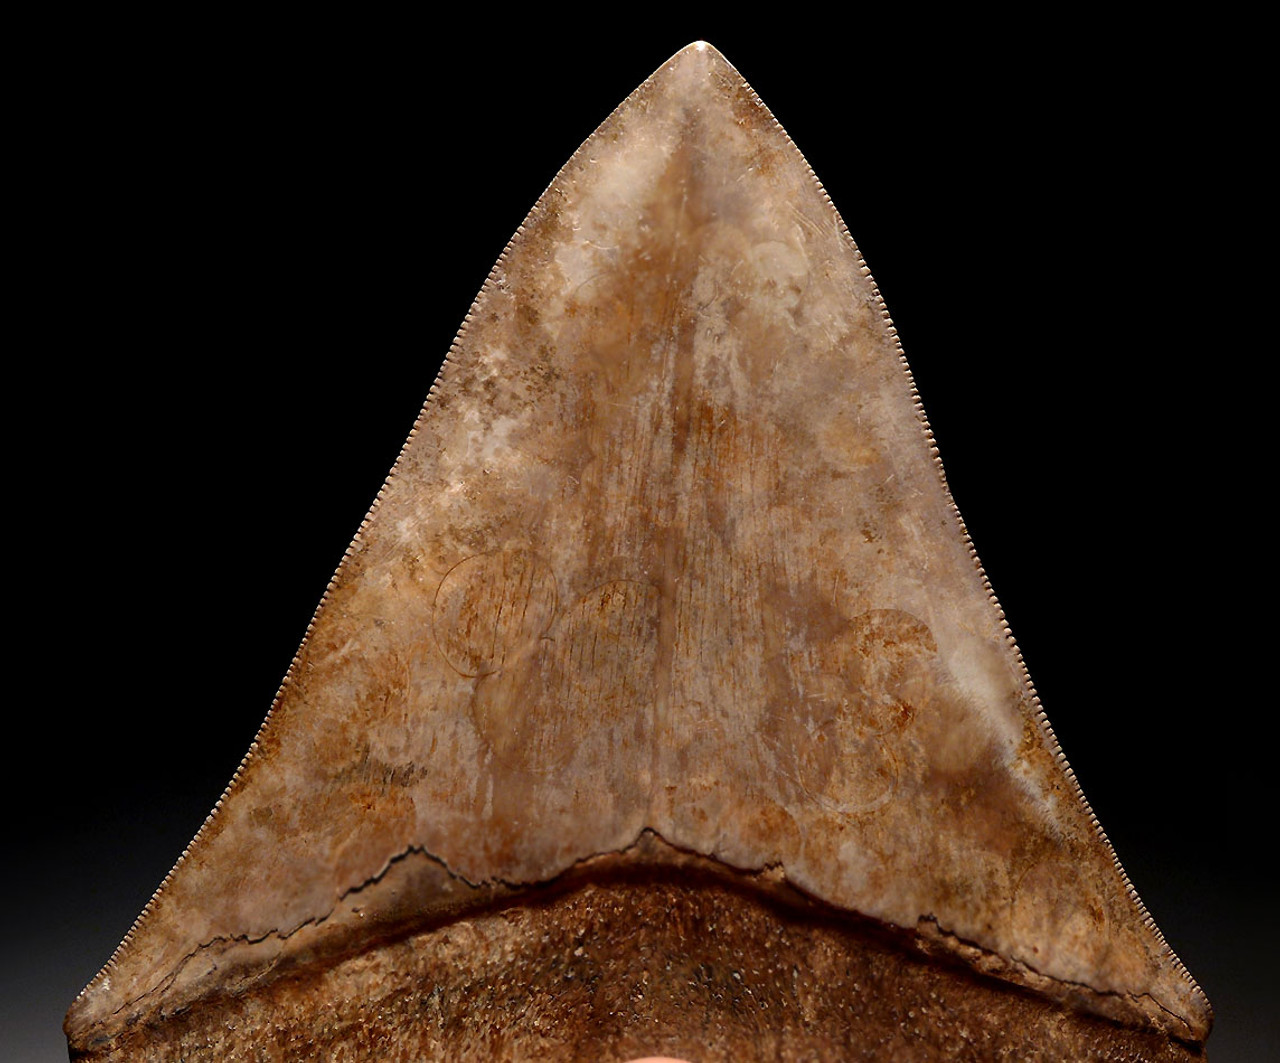 COLLECTOR GRADE SPOTTED PEARLESCENT COPPER BROWN 4.65 INCH MEGALODON SHARK TOOTH *SH6-364